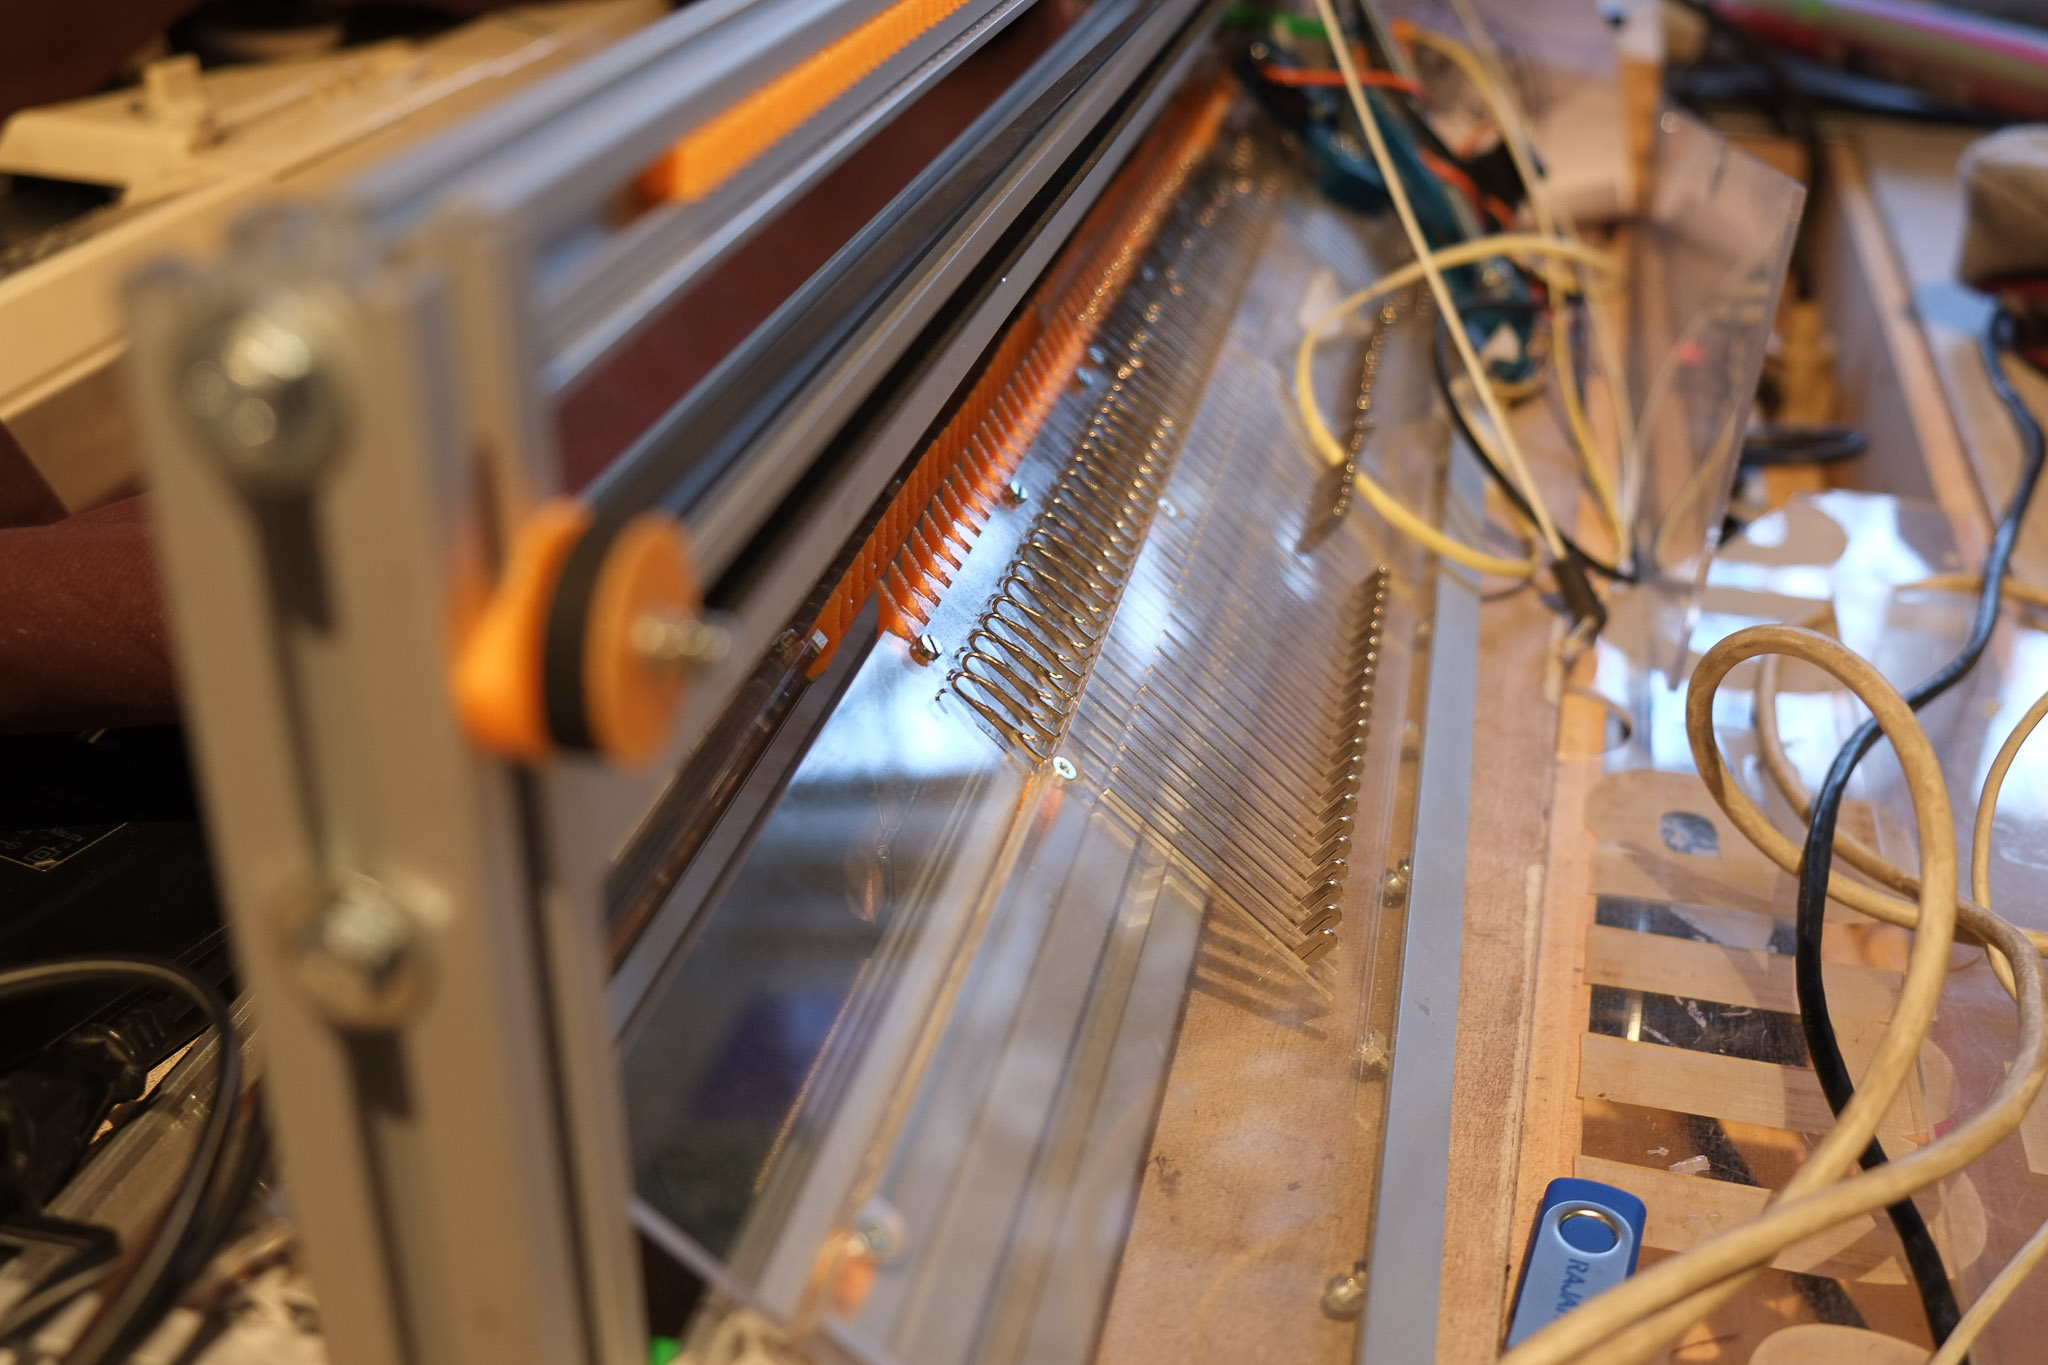 a photograph of a free open source electronic knitting machine, close-up